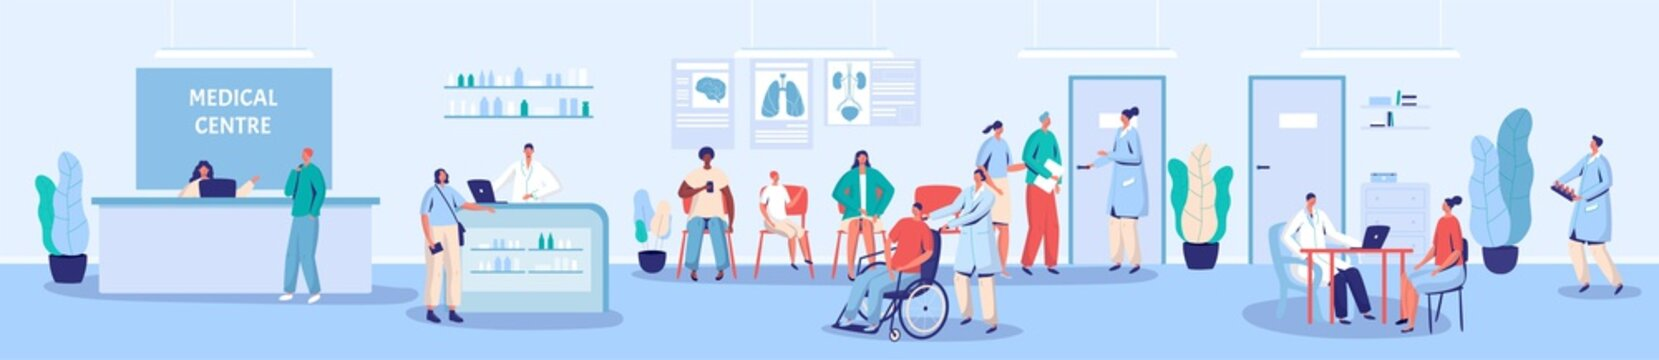 Medical center reception and waiting room vector illustration